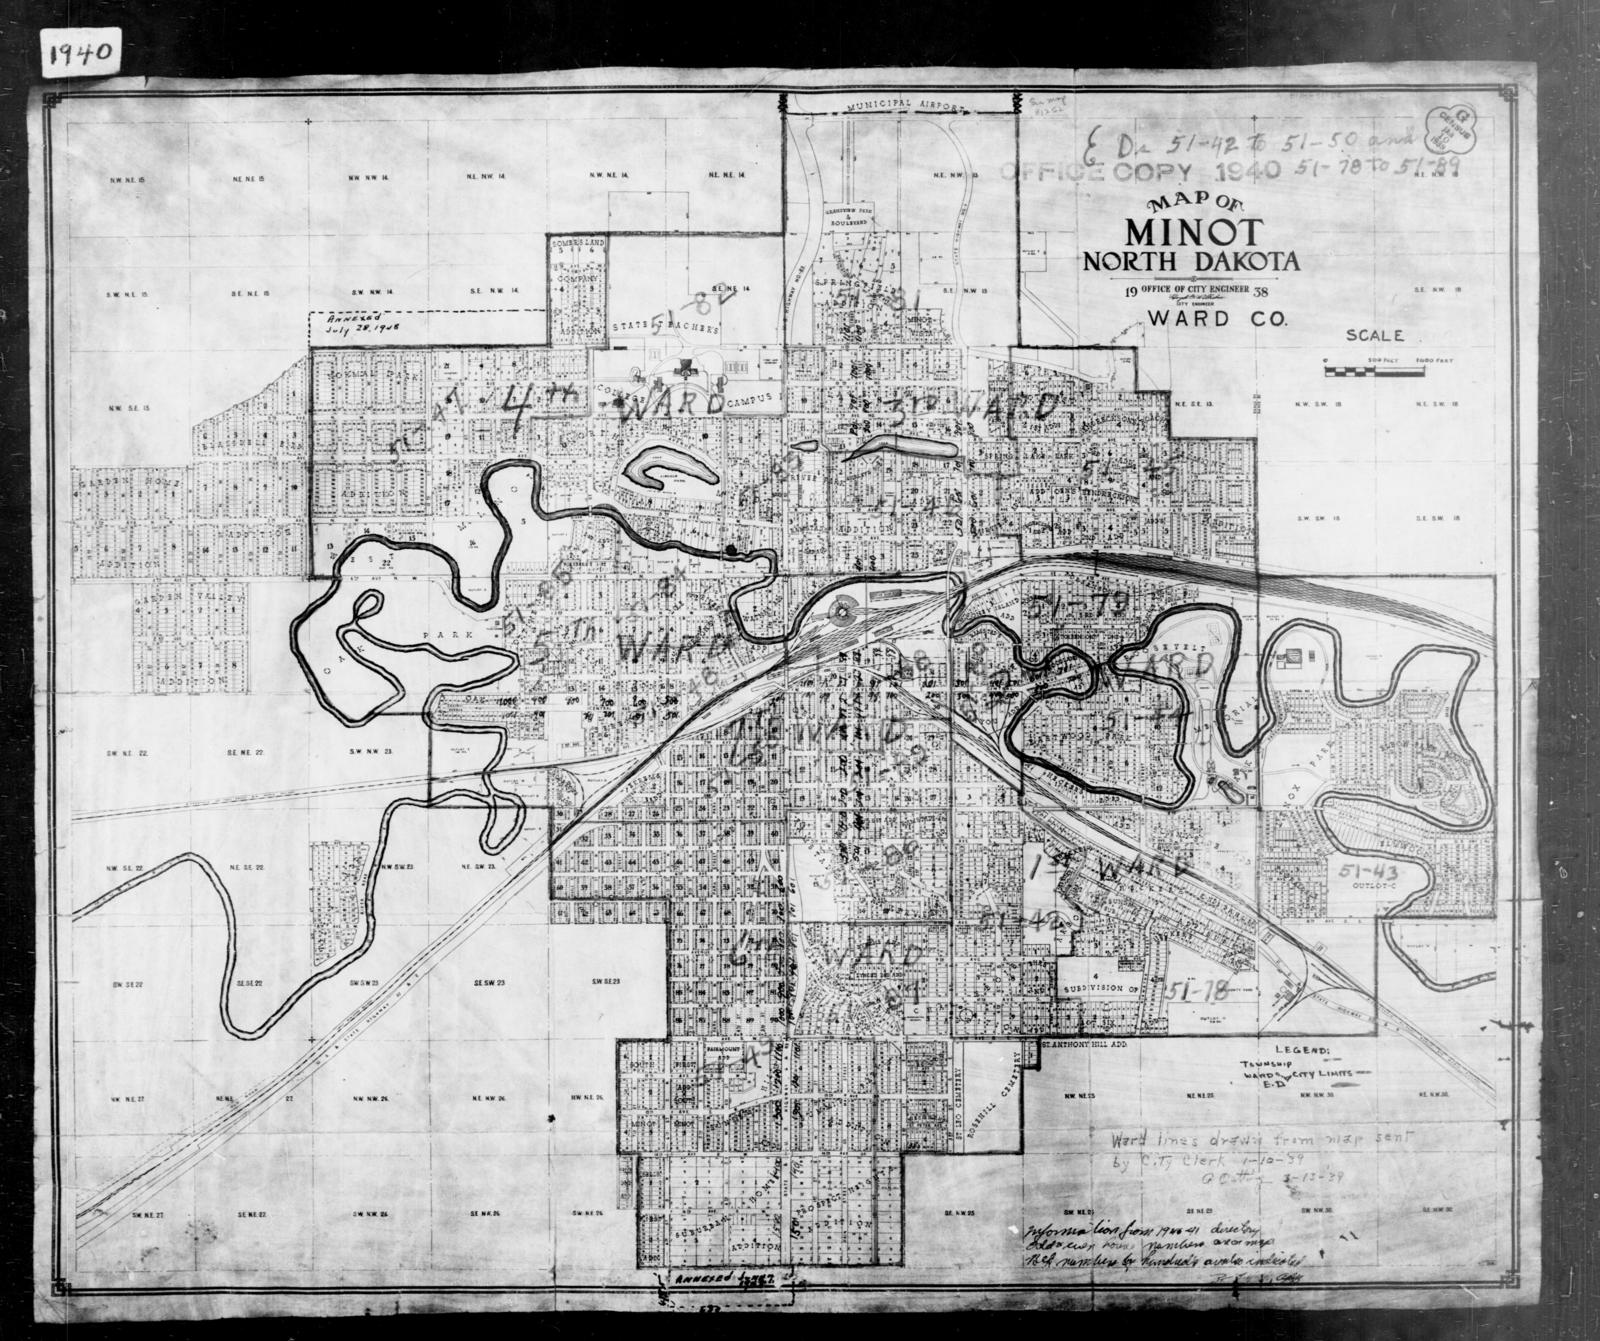 1940 Census Enumeration District Maps - North Dakota - Ward ... on map of arcata ca, map of carson city nevada, map of troy new york, map of casa grande arizona, map of la grande oregon, map of evanston illinois, map of spearfish south dakota, map of terranea, map of alamogordo new mexico, map of north minot nd, map of aberdeen south dakota, map of new haven connecticut, map of minot state, map of minot beach, map nd north dakota, map of winter garden florida, map of cedar rapids iowa, map of boone iowa, map of ashland ohio, map of hutchinson kansas,